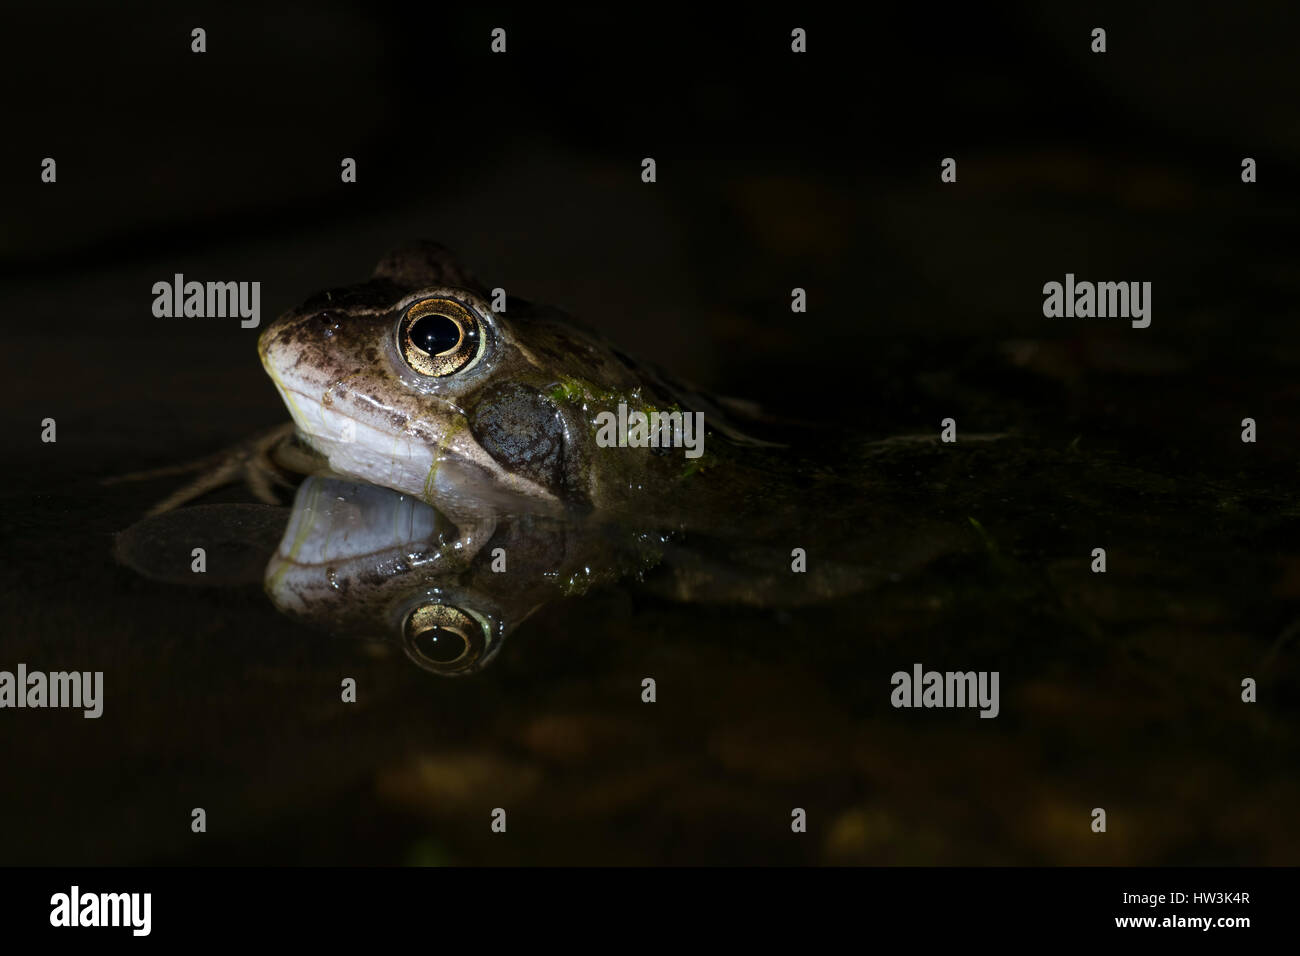 Close up of Common Frog (Rana Temporaria) in pond at night, Hastings,East Sussex, UK - Stock Image